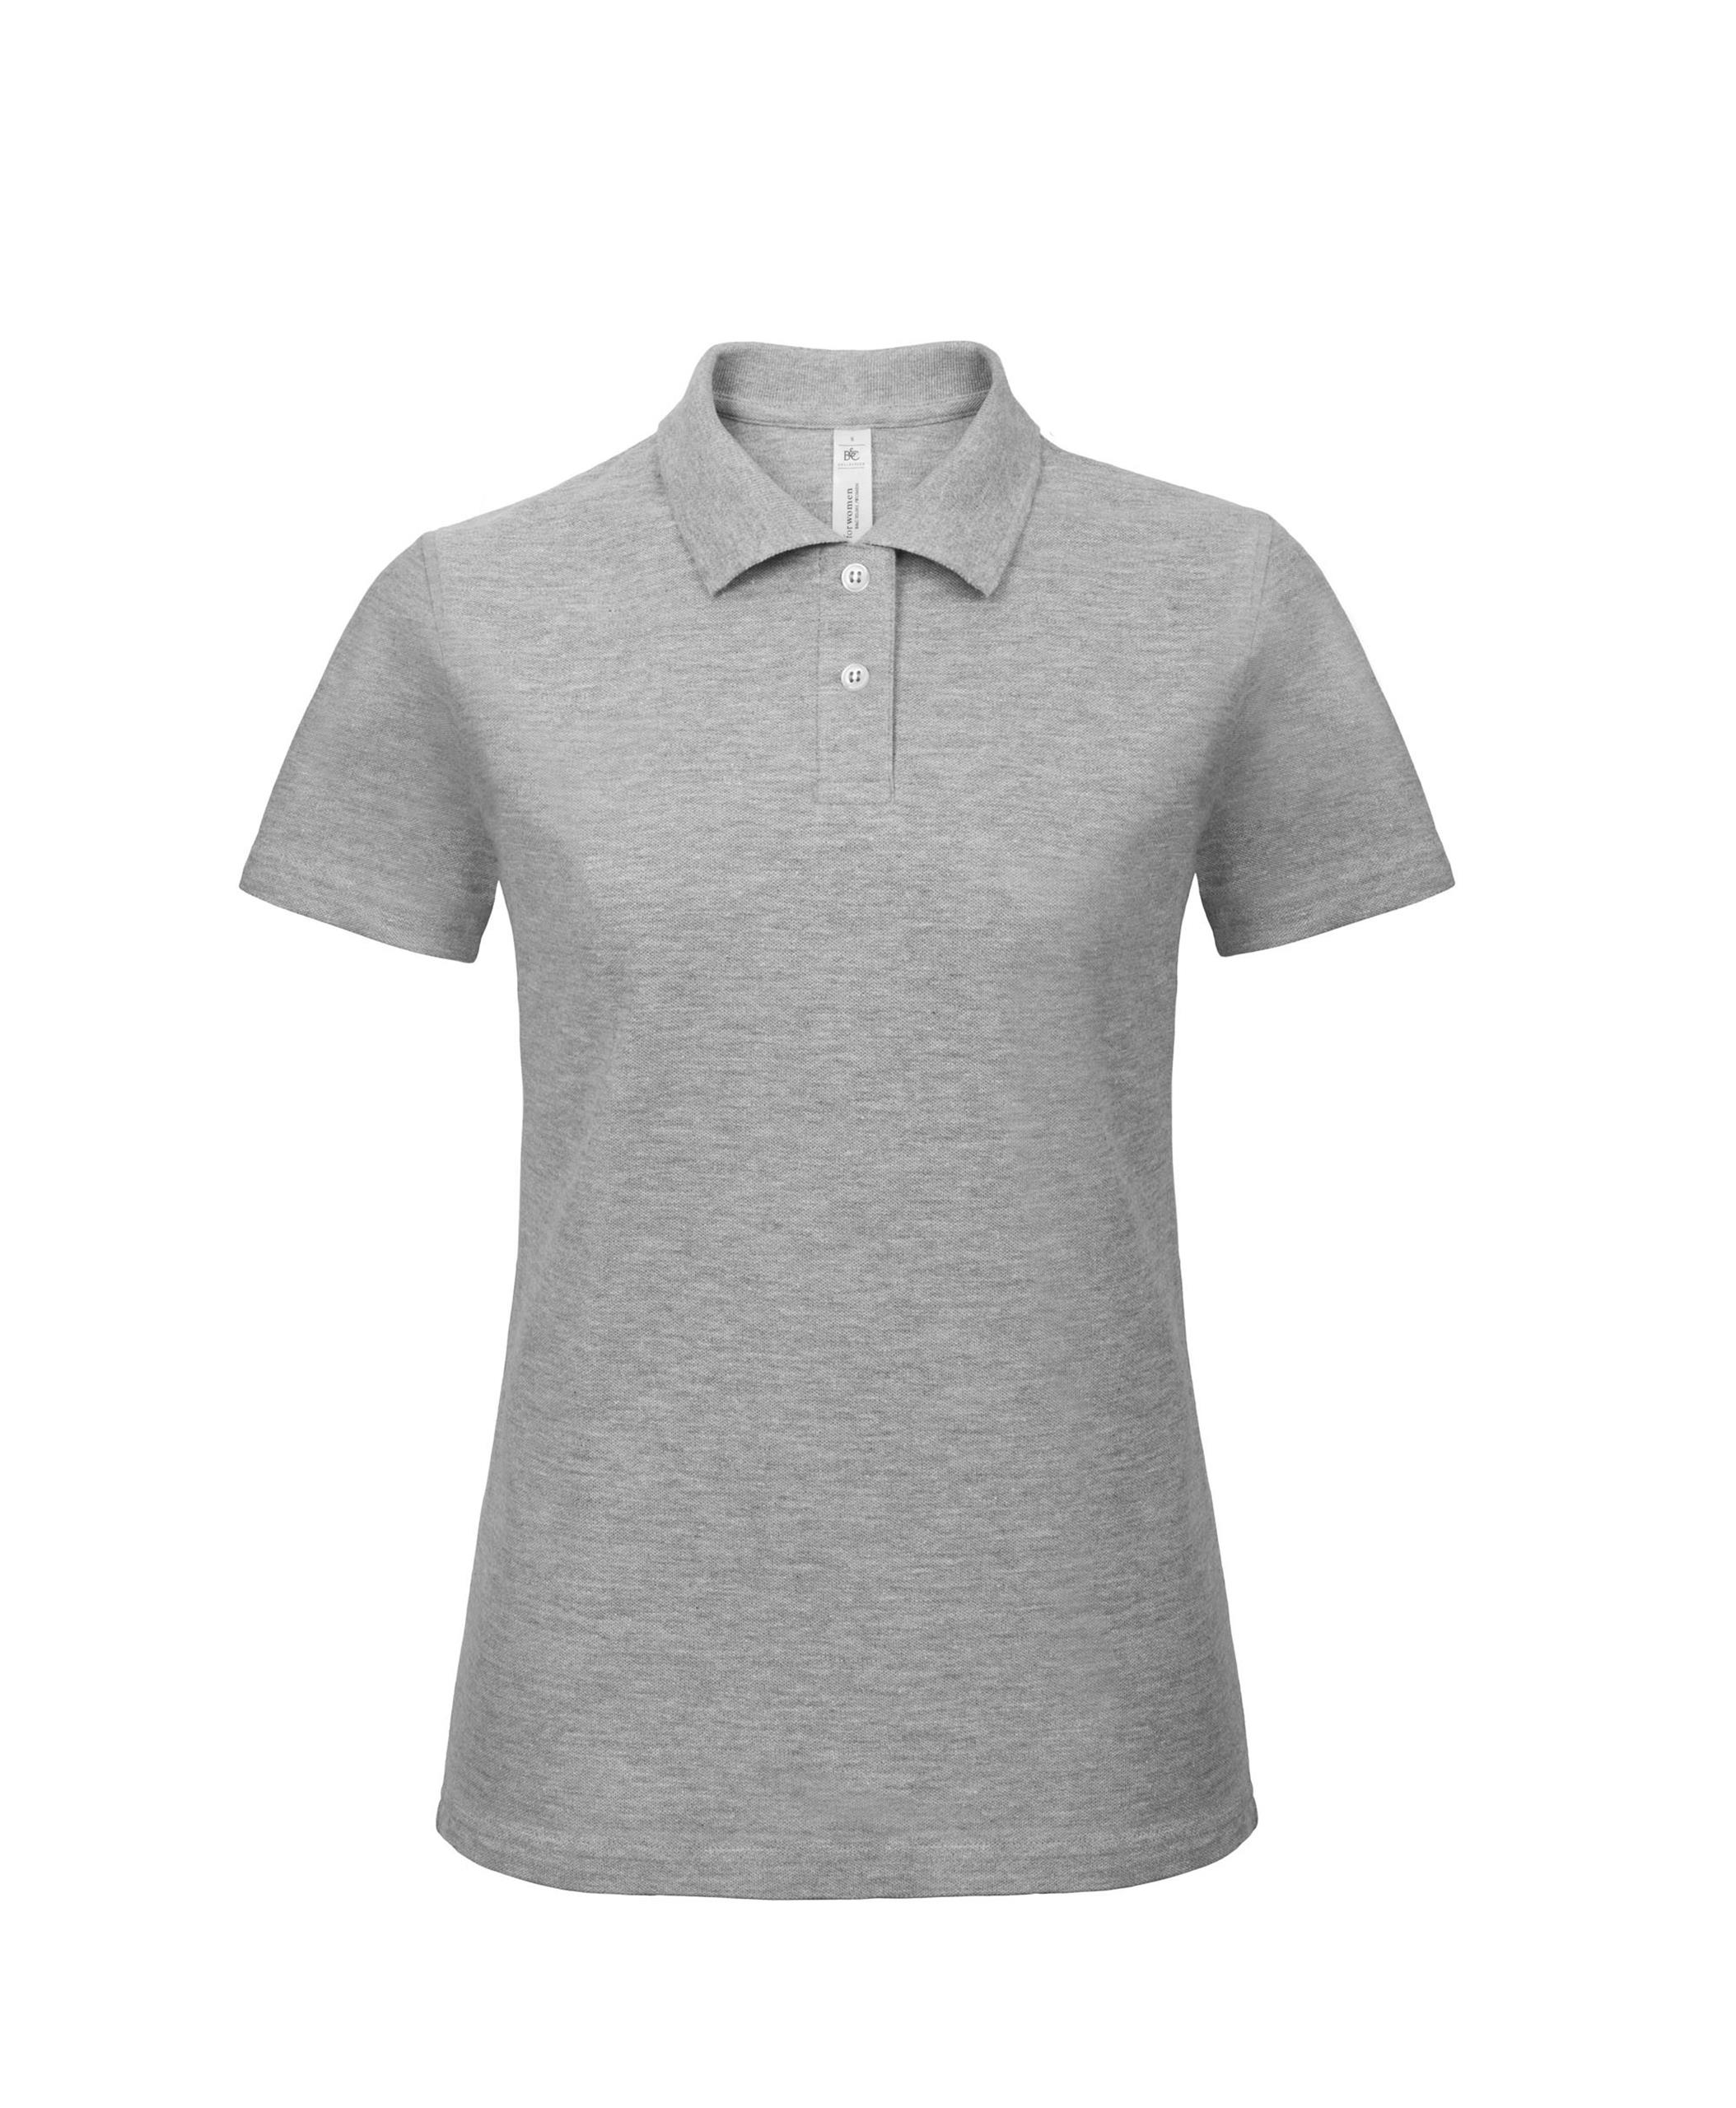 Womens b c collection casual short sleeved button up polo for Womens button up polo shirts